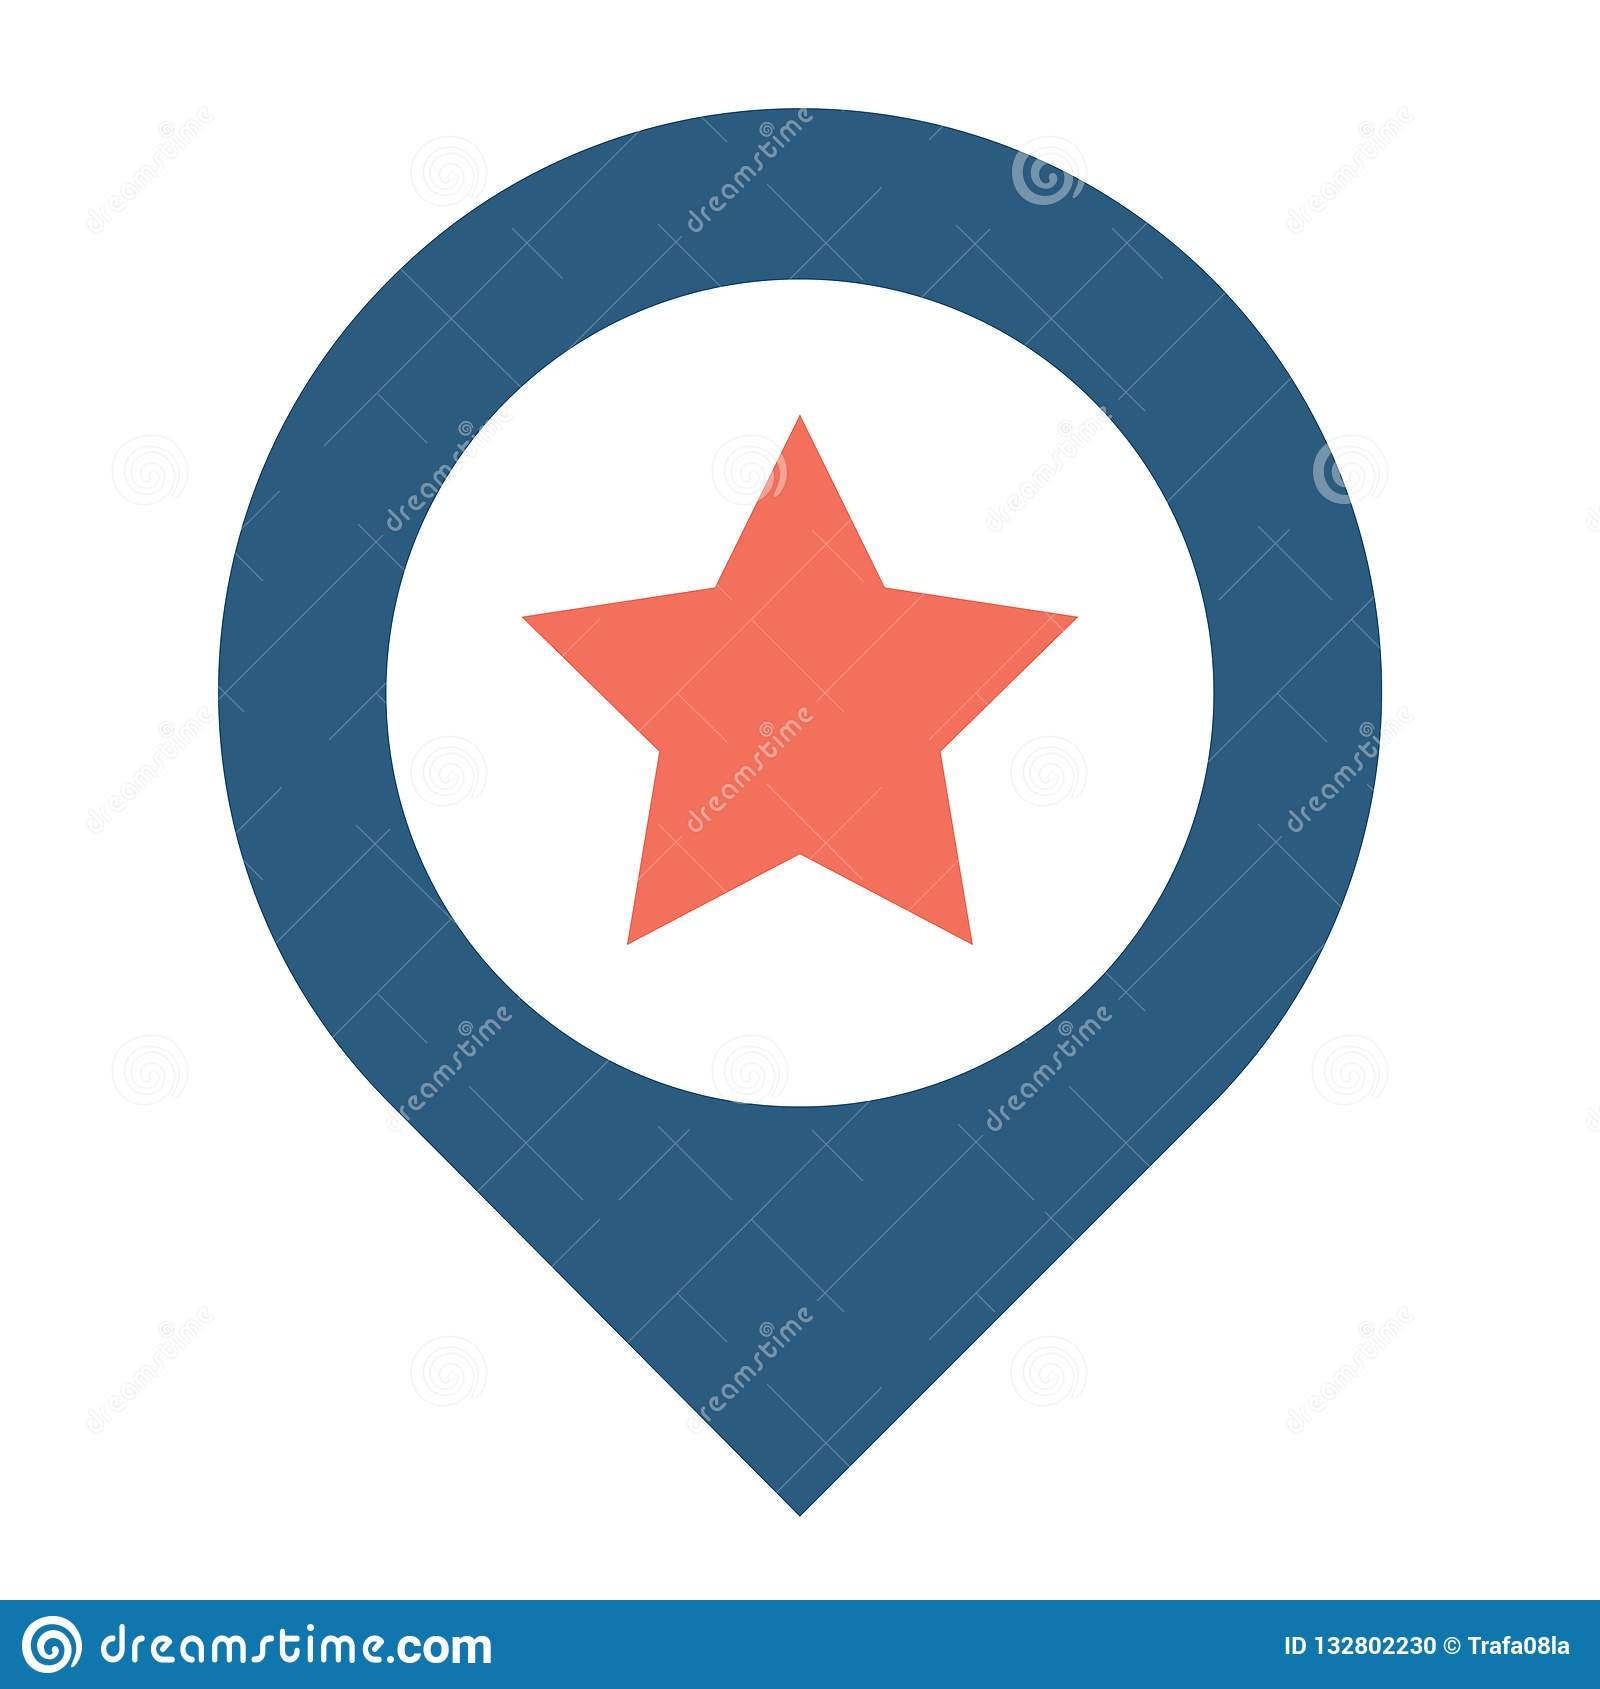 Map Marker Icon, Comp, Vector Pin Location, Gps Icon ... on google map icon symbols, google map icon clip art, google maps android icon, google map dyersburg tn, google map icon police, map pin icon, google map from space, google map pin, google maps detroit area, google map with markers, google earth icon guide, old google maps icon, map locator icon, multi-select icon, google map icon maker, google maps icons shapes, google maps navigation icon, map pointer icon, google maps placemark icons, google maps custom icons,